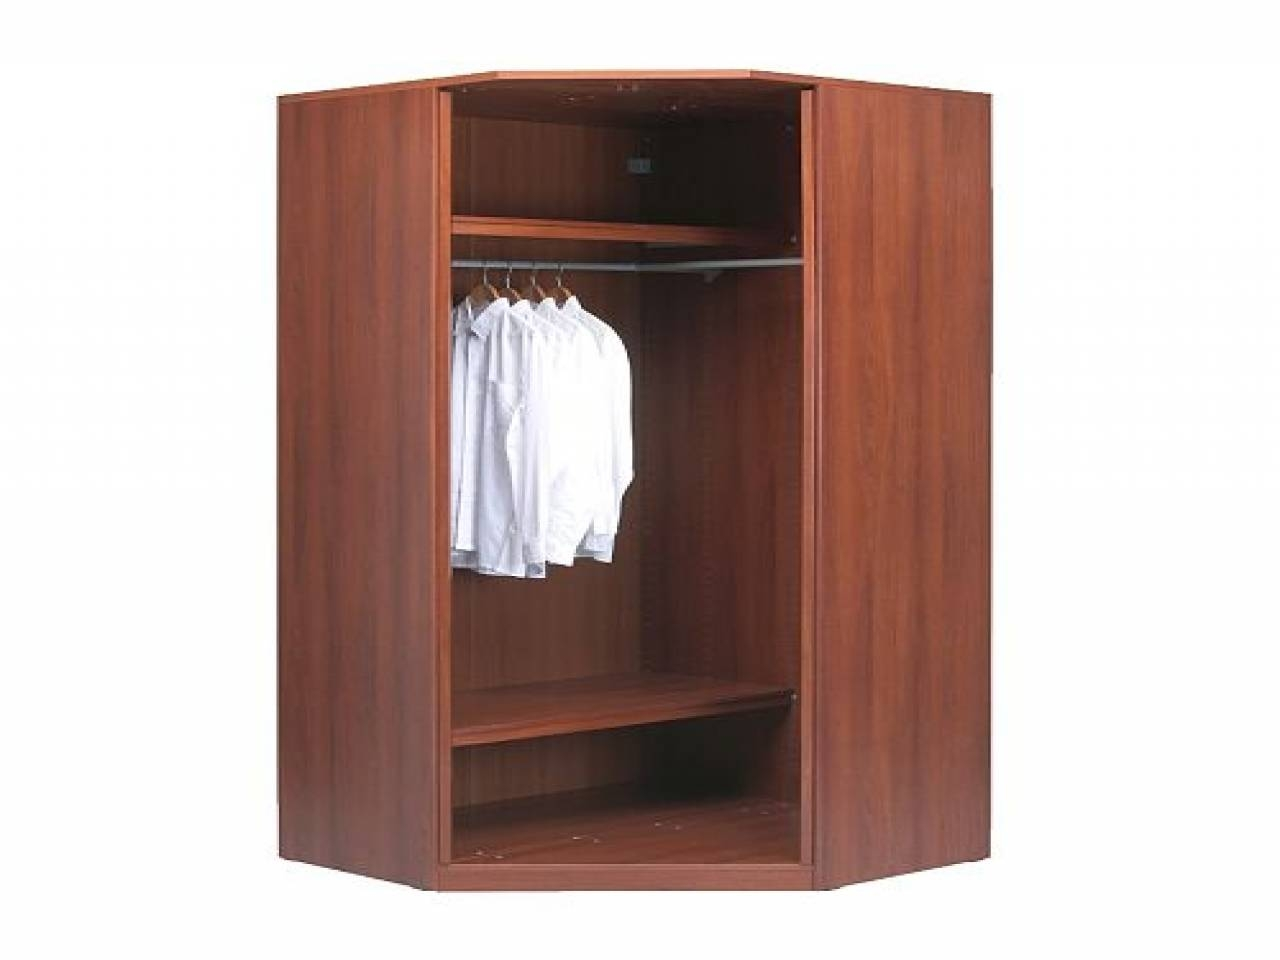 Laundry Room Closet Ideas, Ikea Hopen Wardrobe Closet Ikea Hopen for Corner Wardrobe Closet Ikea (Image 15 of 30)